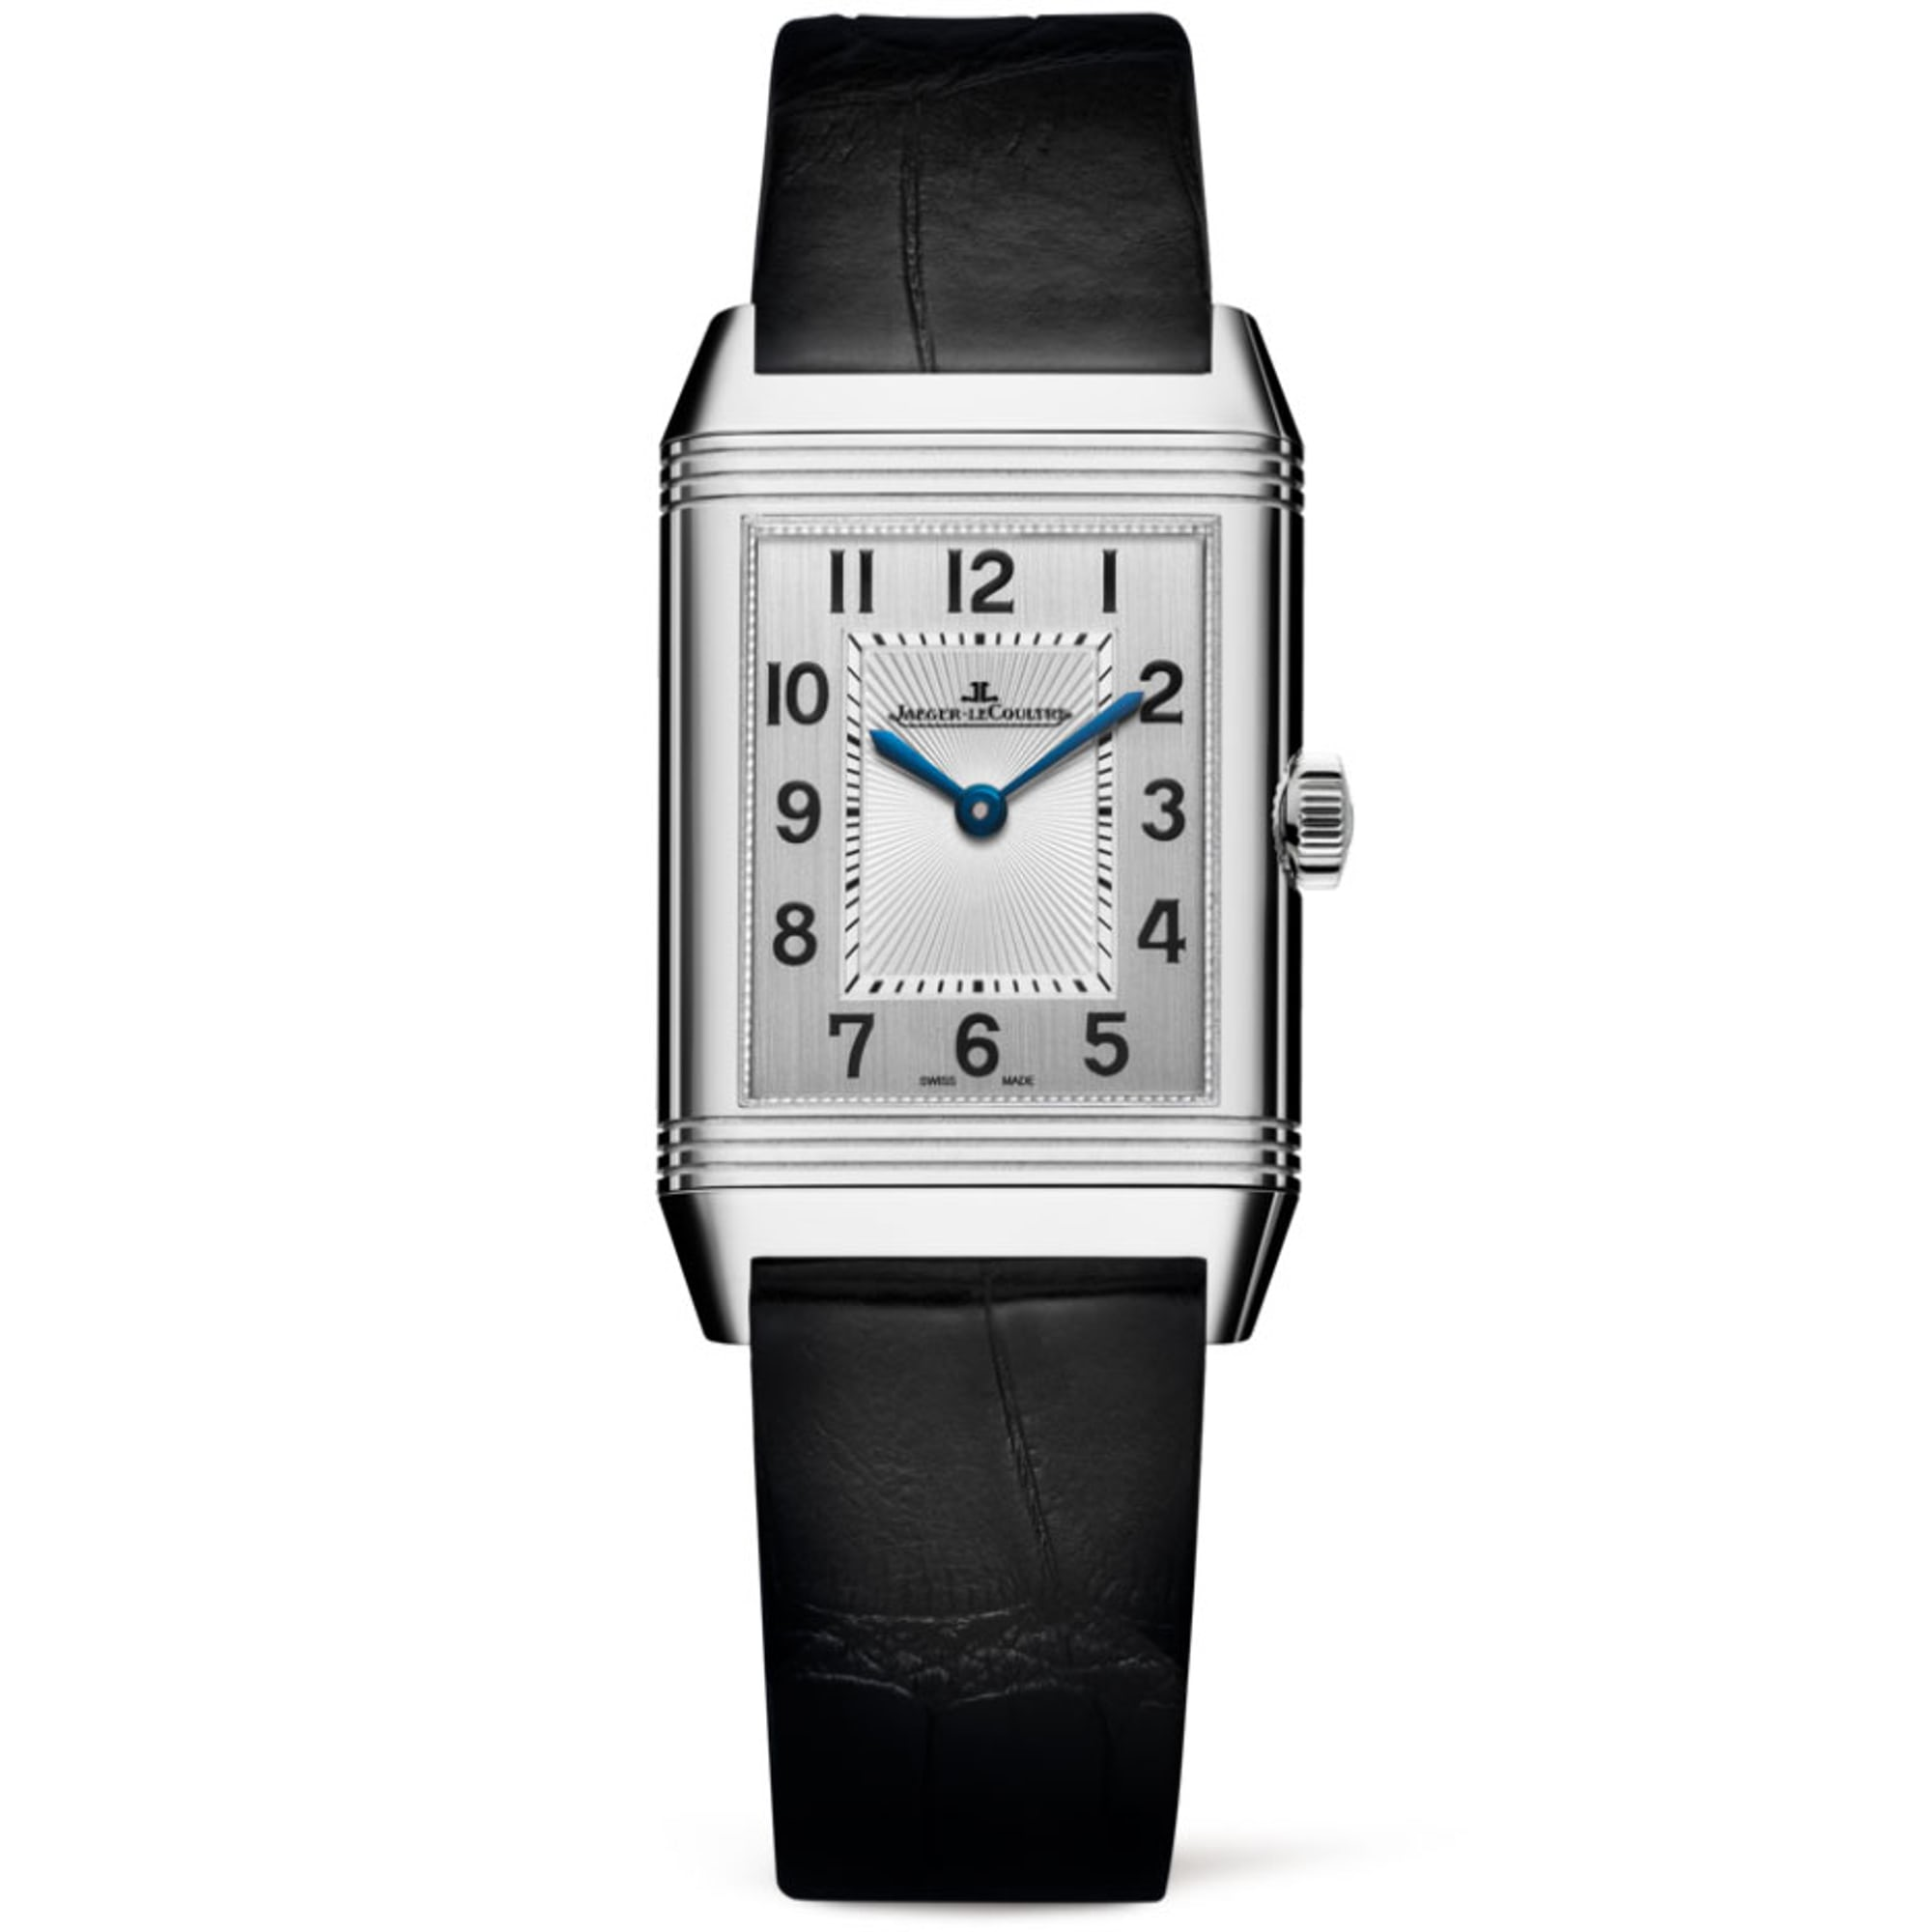 A Week On The Wrist: The Cartier Tank Américaine In Steel A Week On The Wrist: The Cartier Tank Américaine In Steel jlc